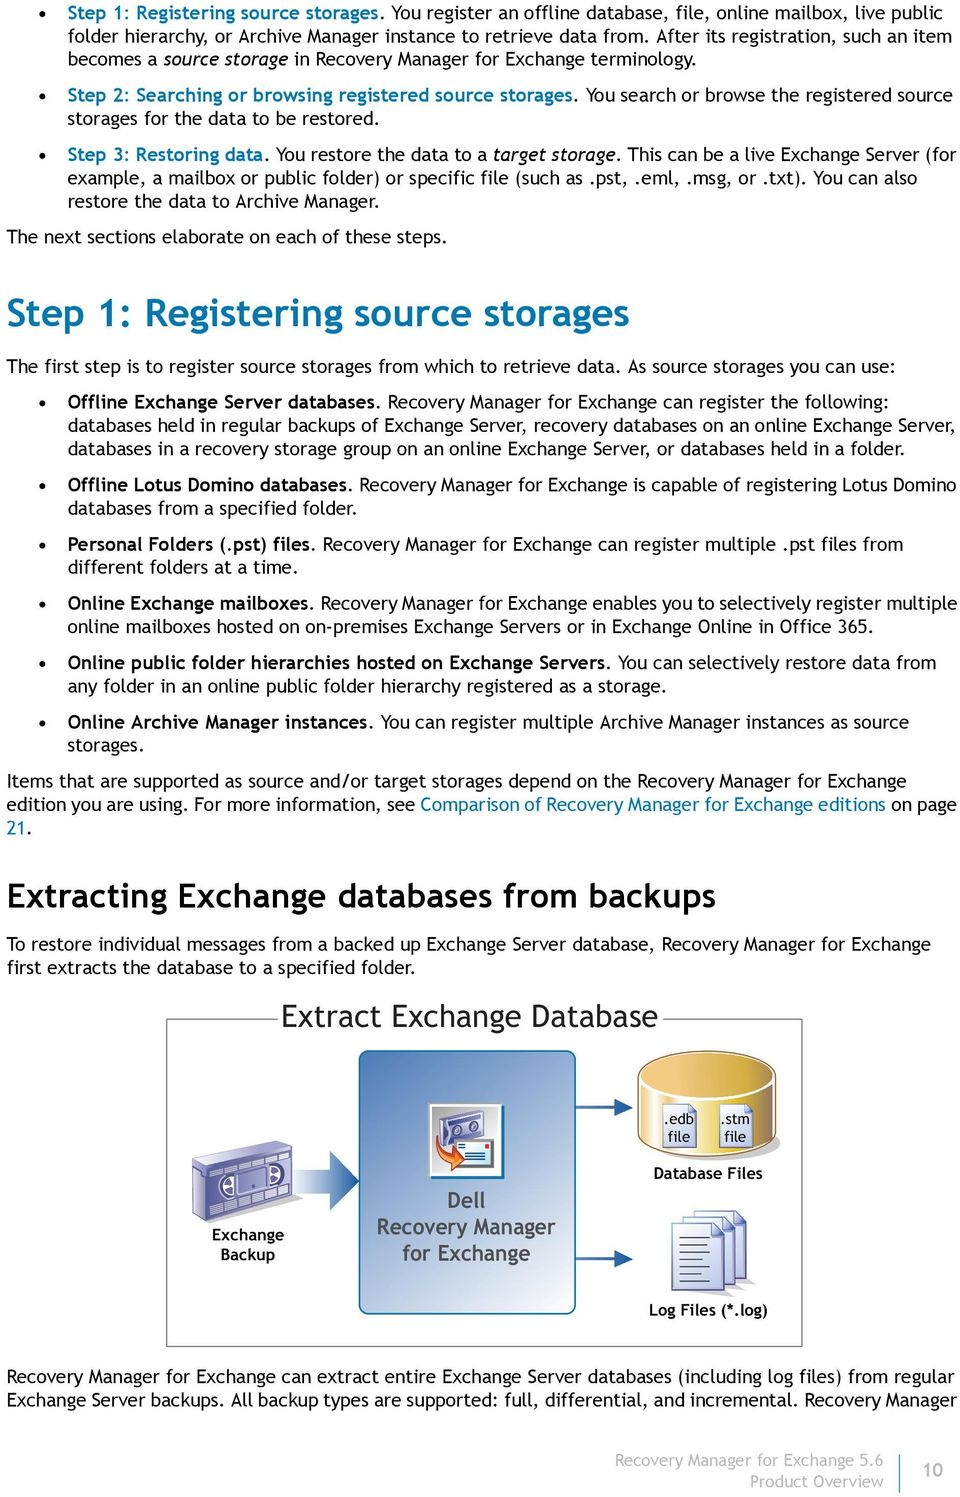 You search or browse the registered source storages for the data to be restored. Step 3: Restoring data. You restore the data to a target storage.